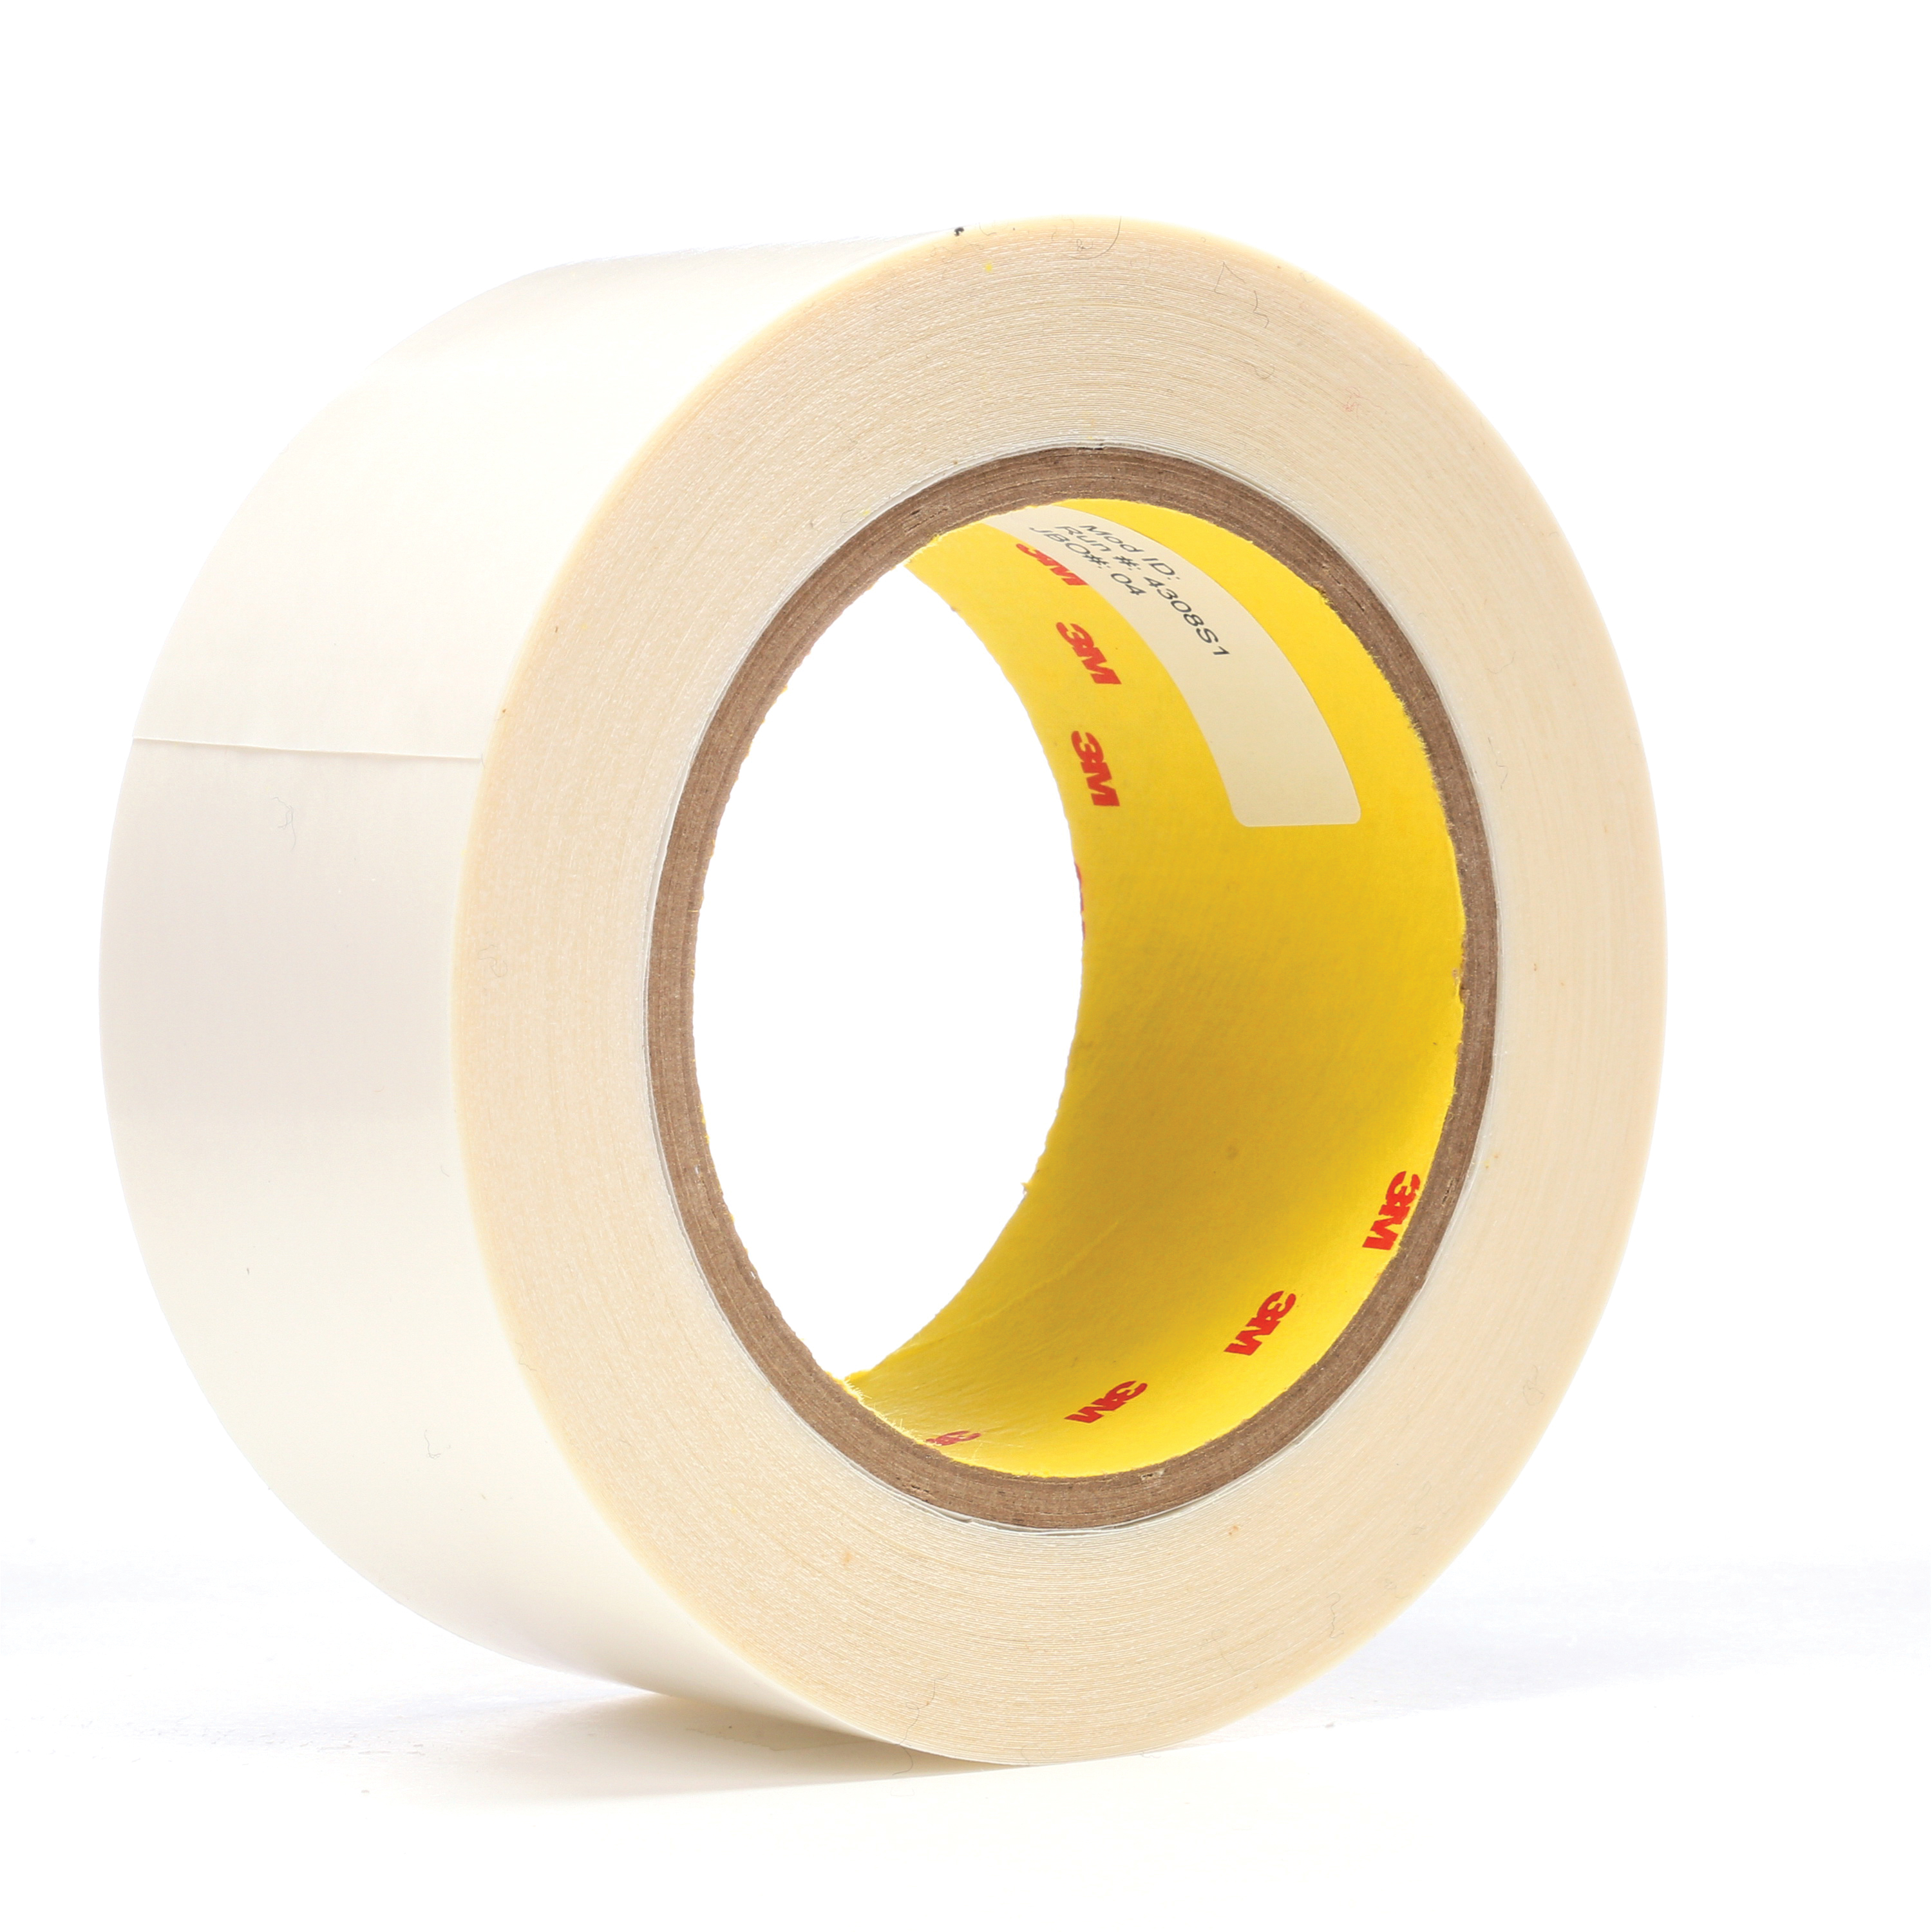 3M™ 021200-04842 444 Double Coated Film Tape, 36 yd L x 2 in W, 6.9 mil THK, Acrylic Adhesive, Polyester Film Backing, Clear